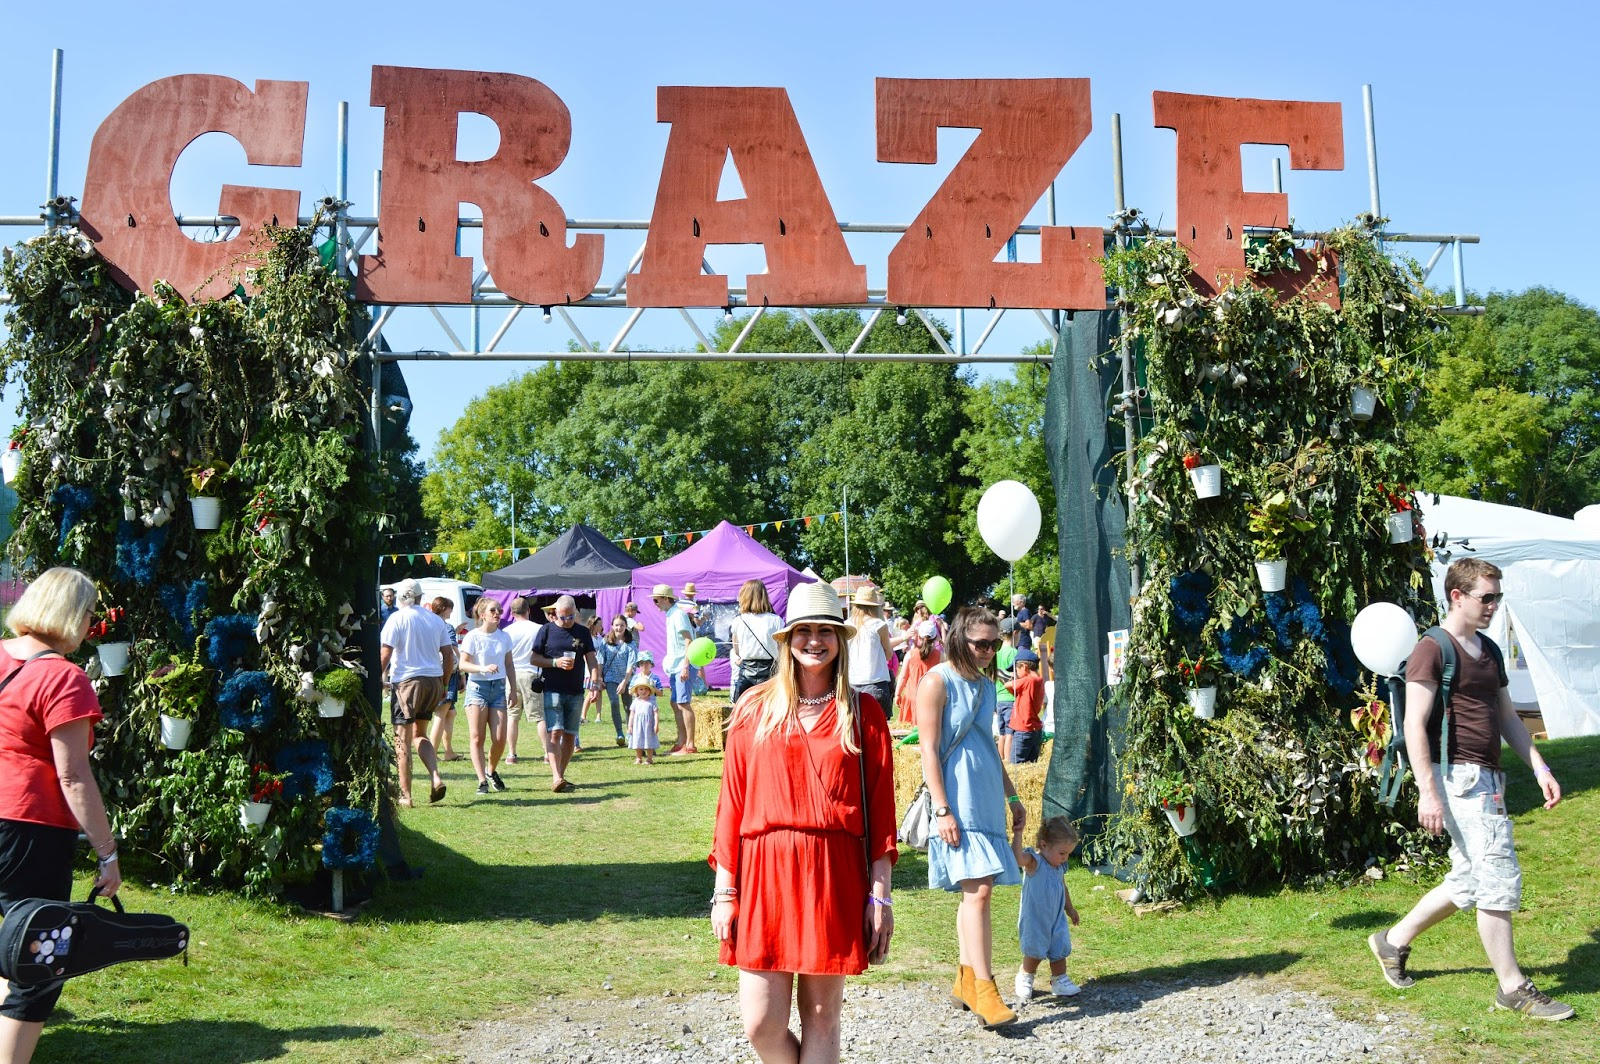 Graze Festival in Twyford, Hampshire blogger, UK lifestyle blog, Hampshire food festivals